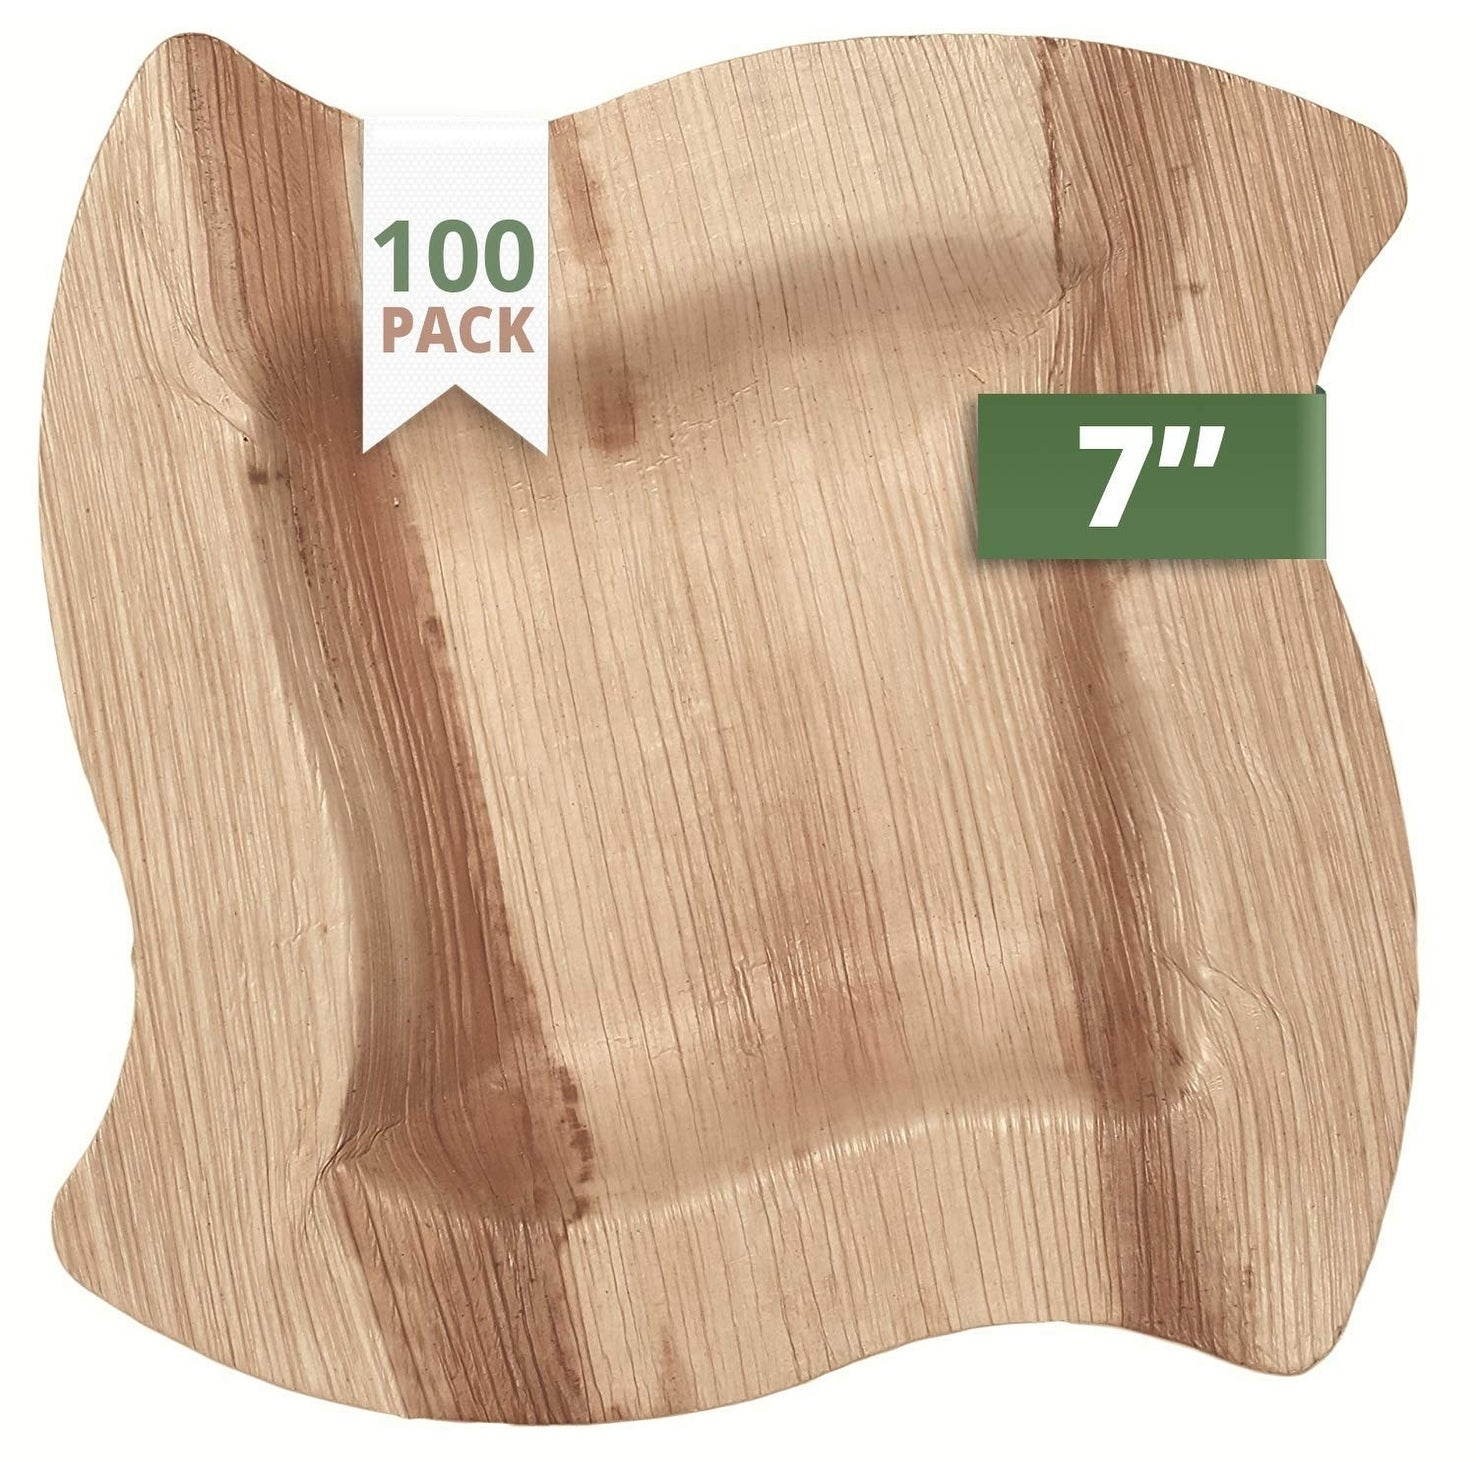 Catereco Wave Palm Leaf 7 Salad Plates 100 Pack Ecofriendly Disposable Dinnerware Overstock 27257682